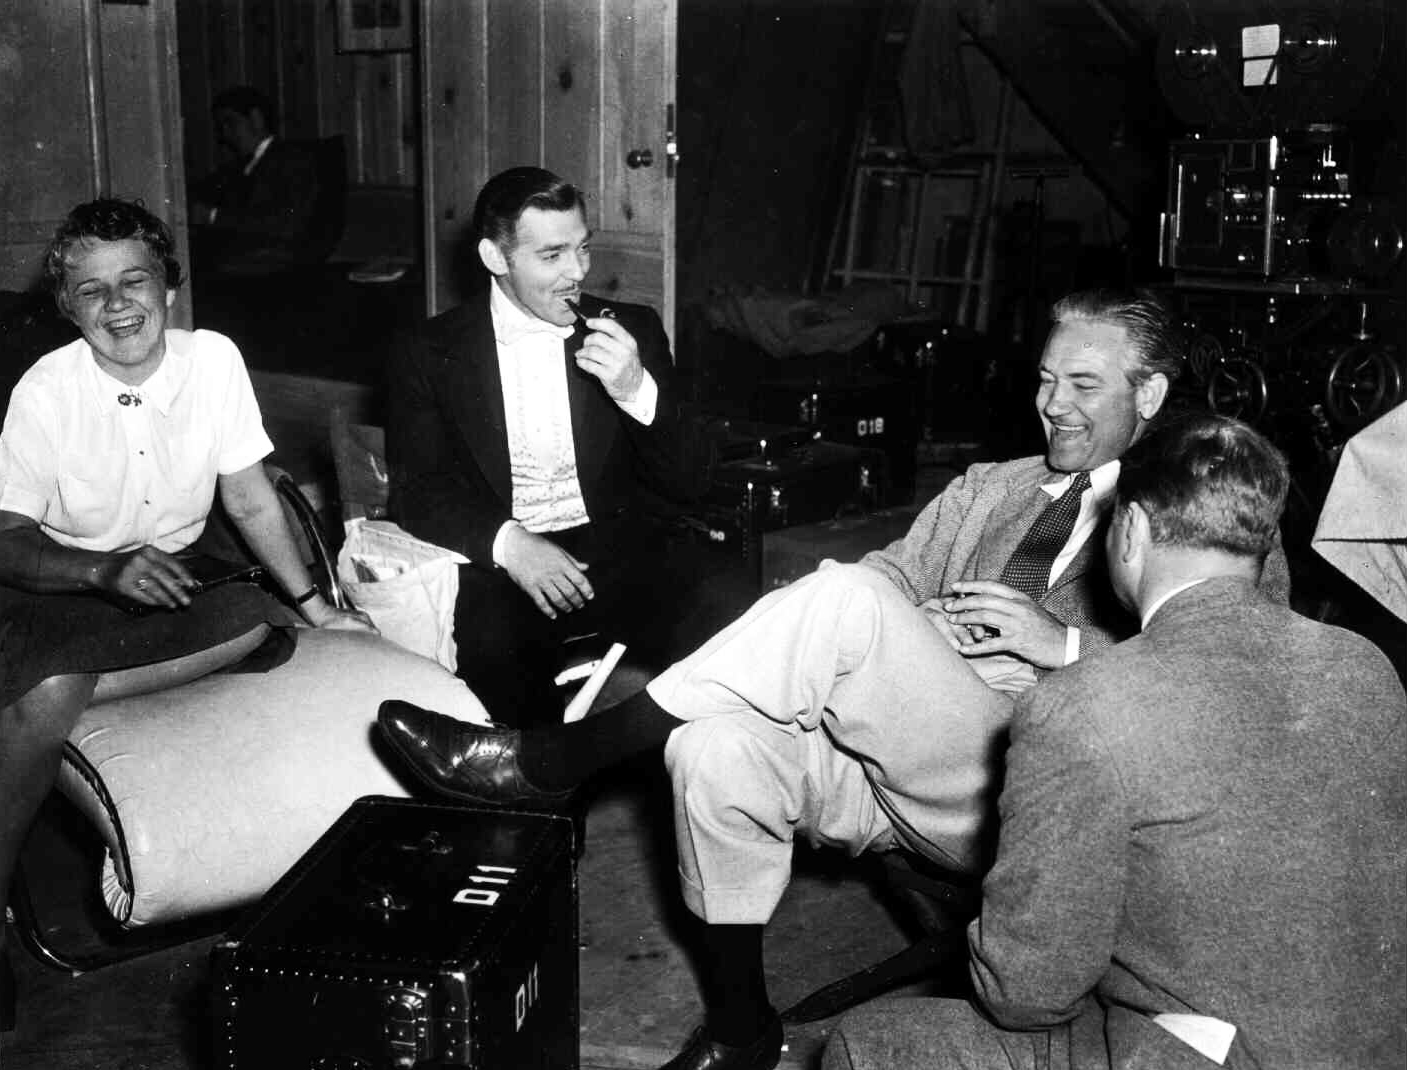 From left: Susan Myrick, Clark Gable, and Victor Fleming on the set of Gone with the Wind in 1939.